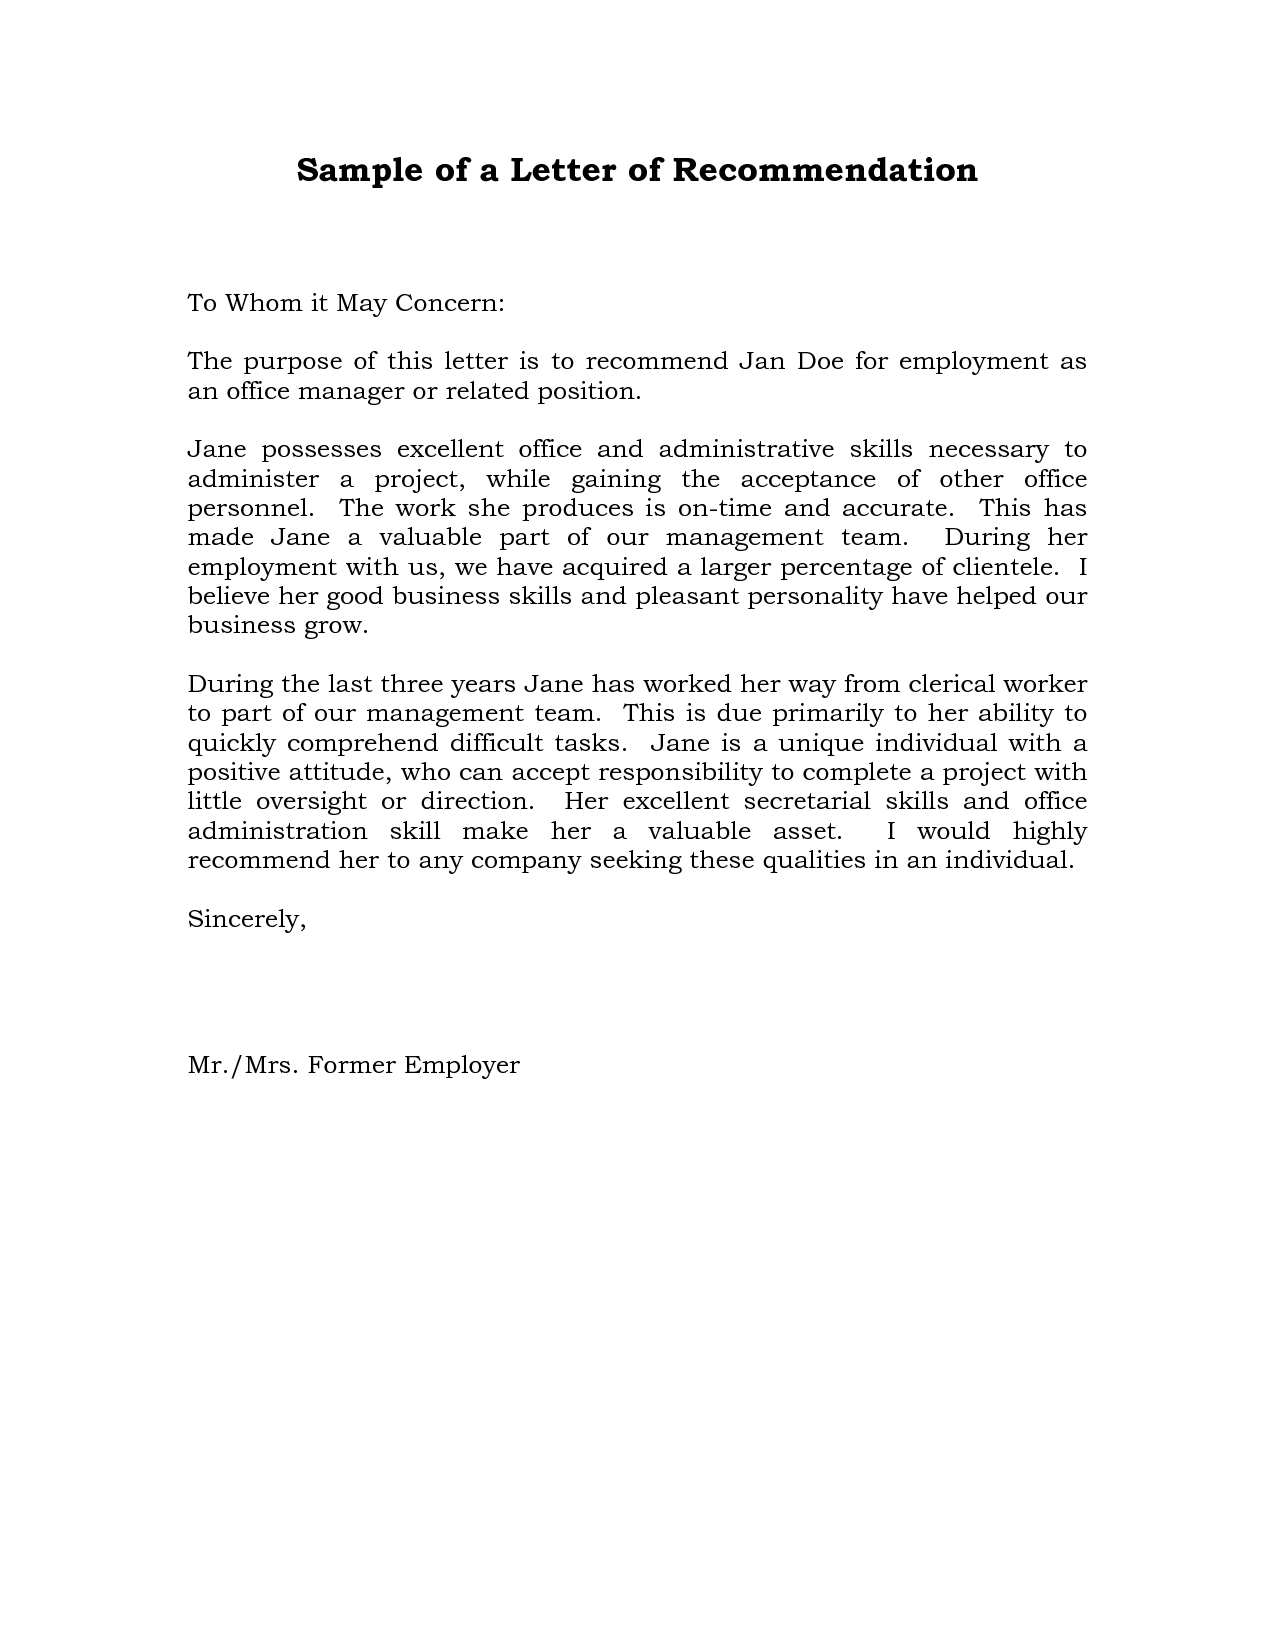 Reference Letter of Recommendation Sample – Microsoft Letter of Recommendation Template